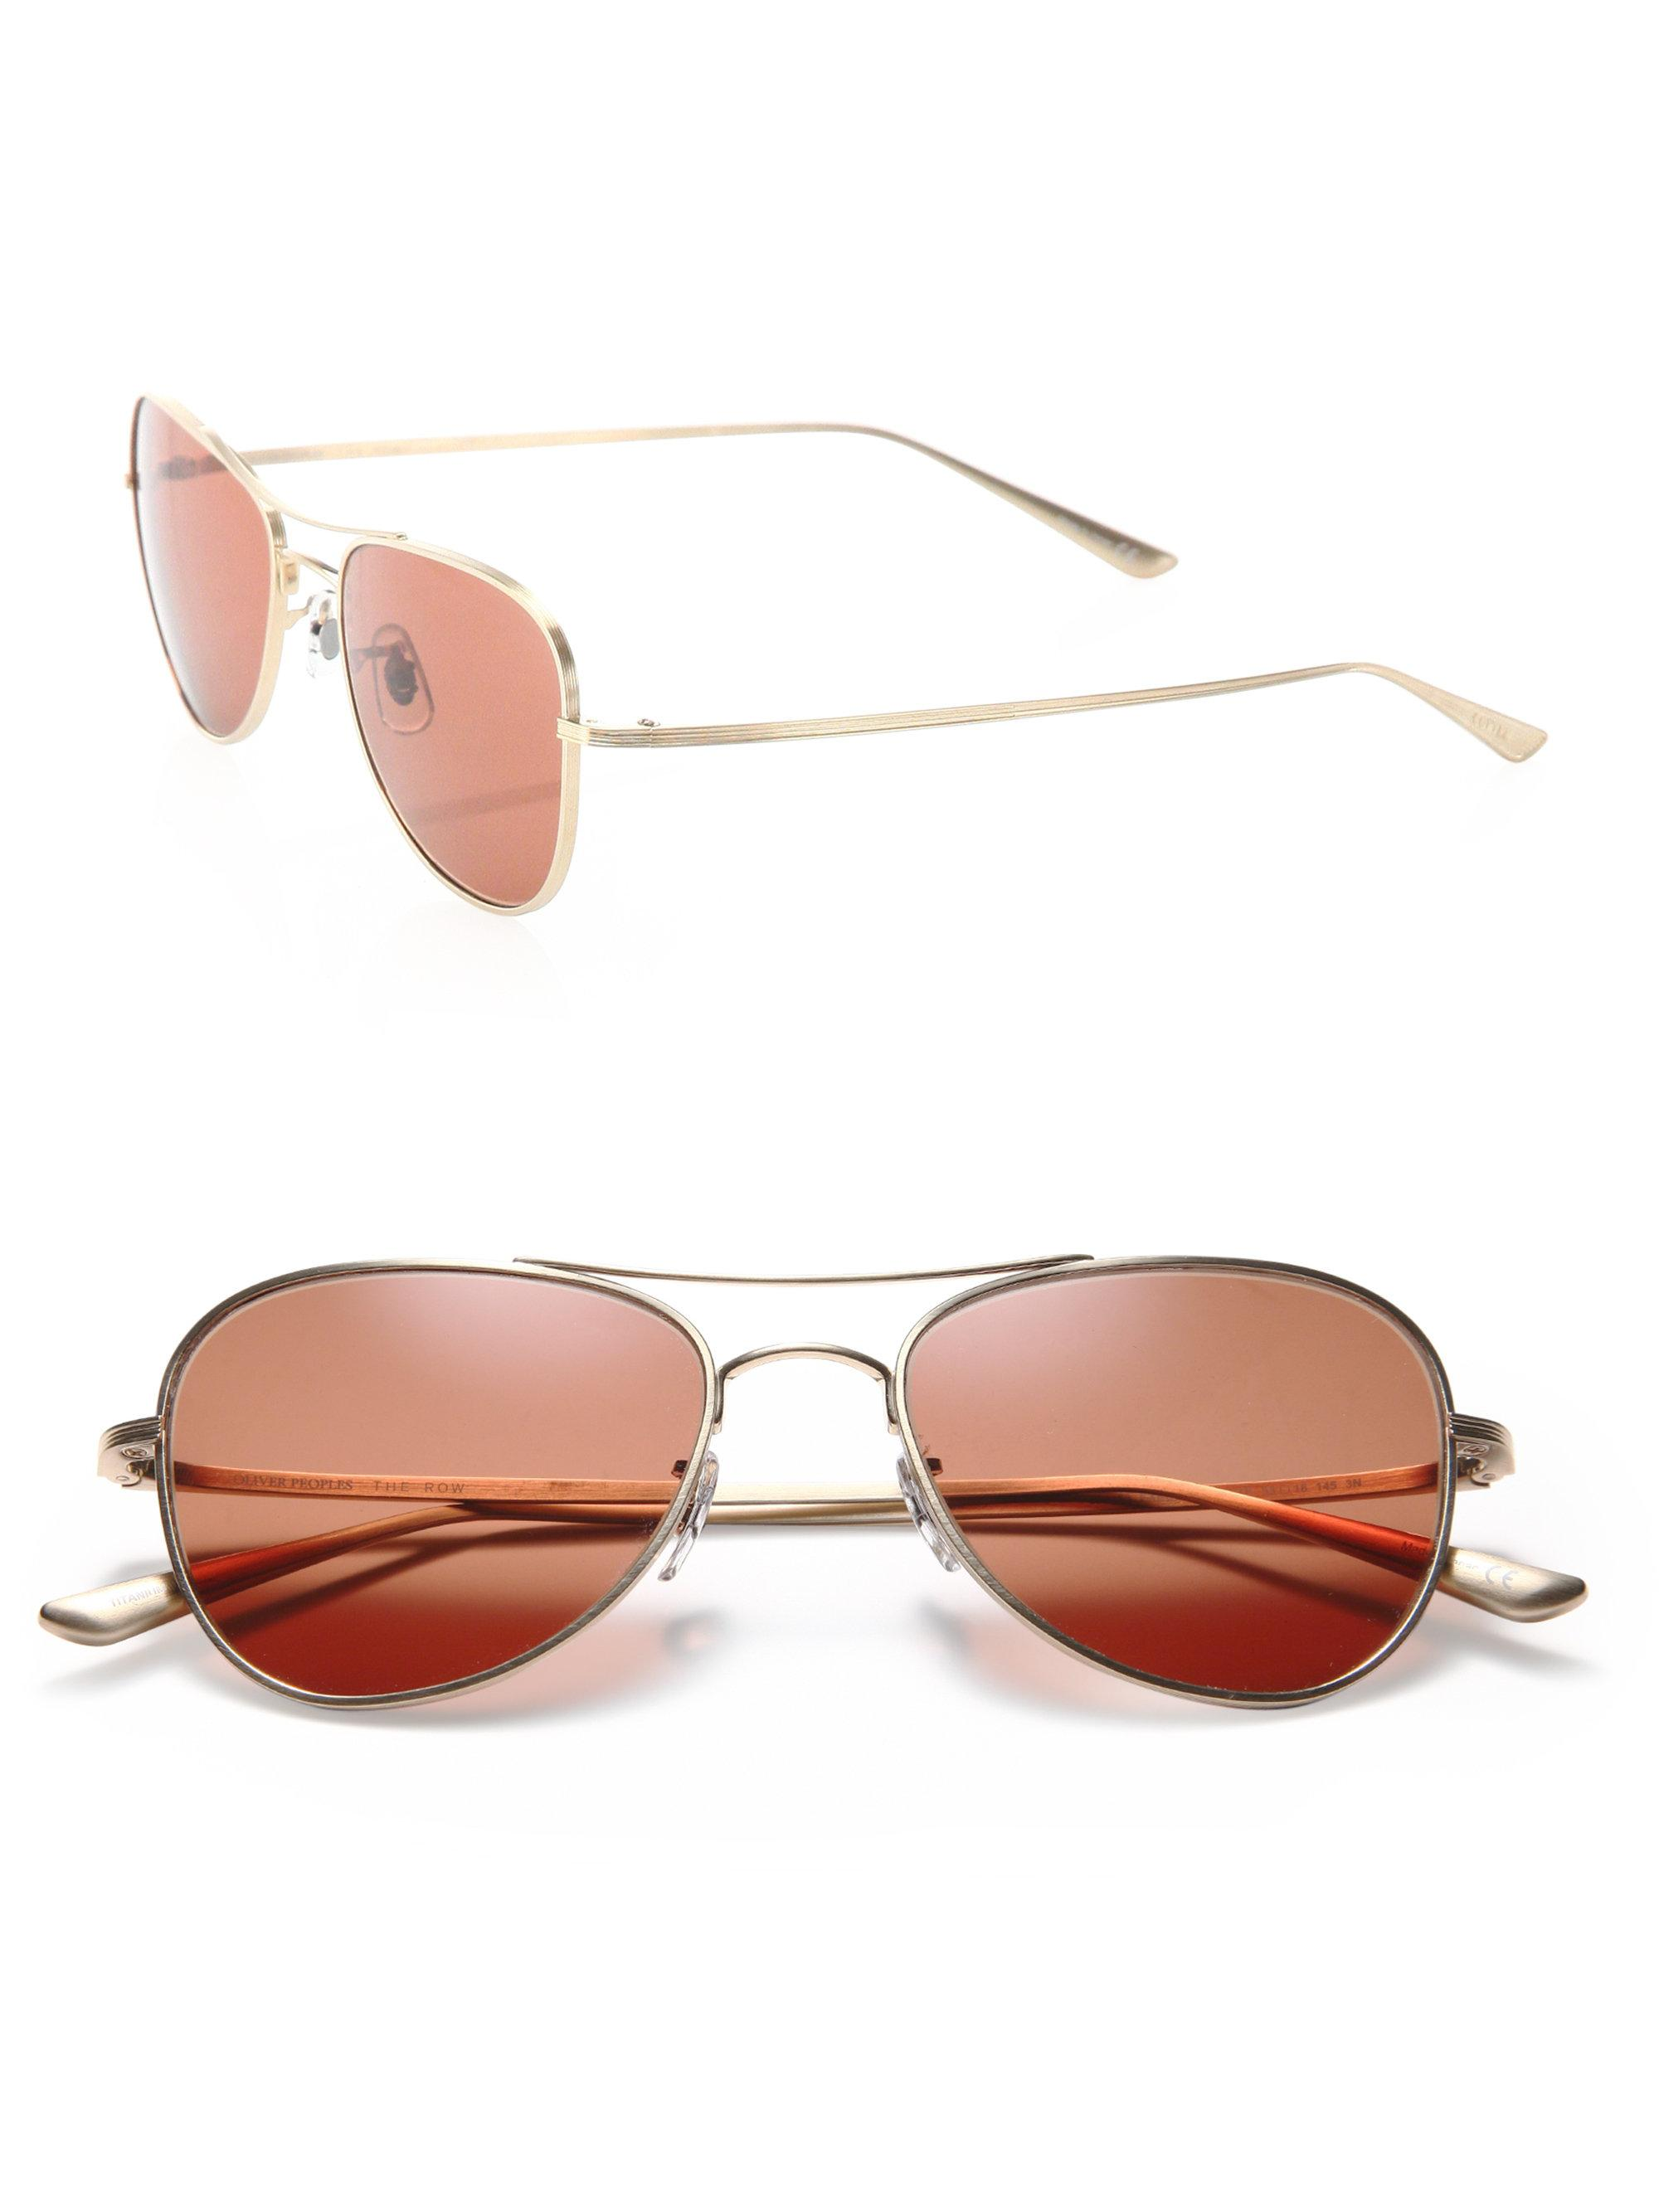 aa4d2a154035 Oliver Peoples The Row For Oliver Peoples Executive Suite 53mm ...